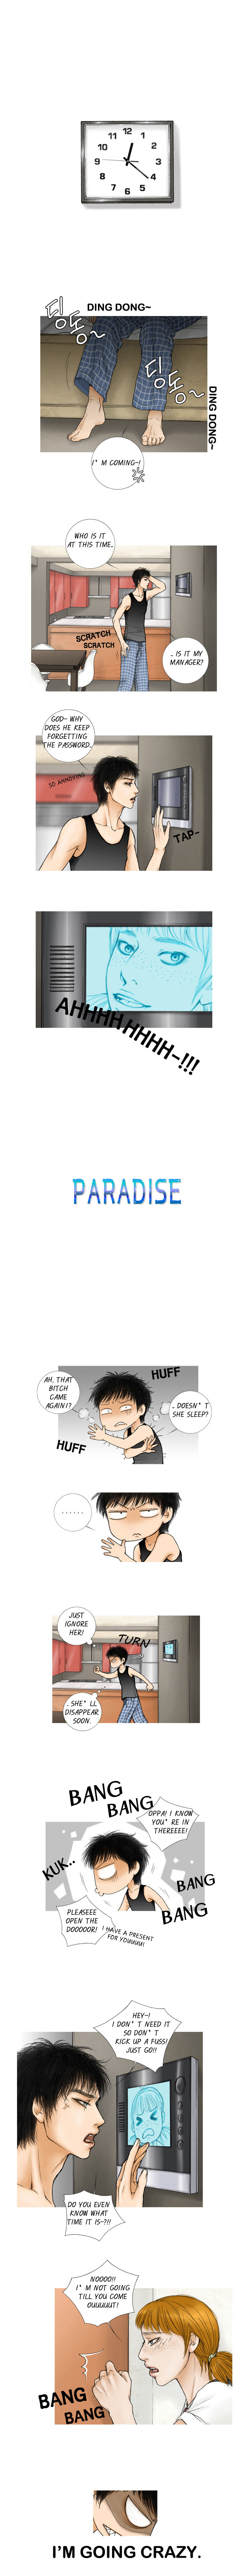 Paradise (Miso) 2 Page 2